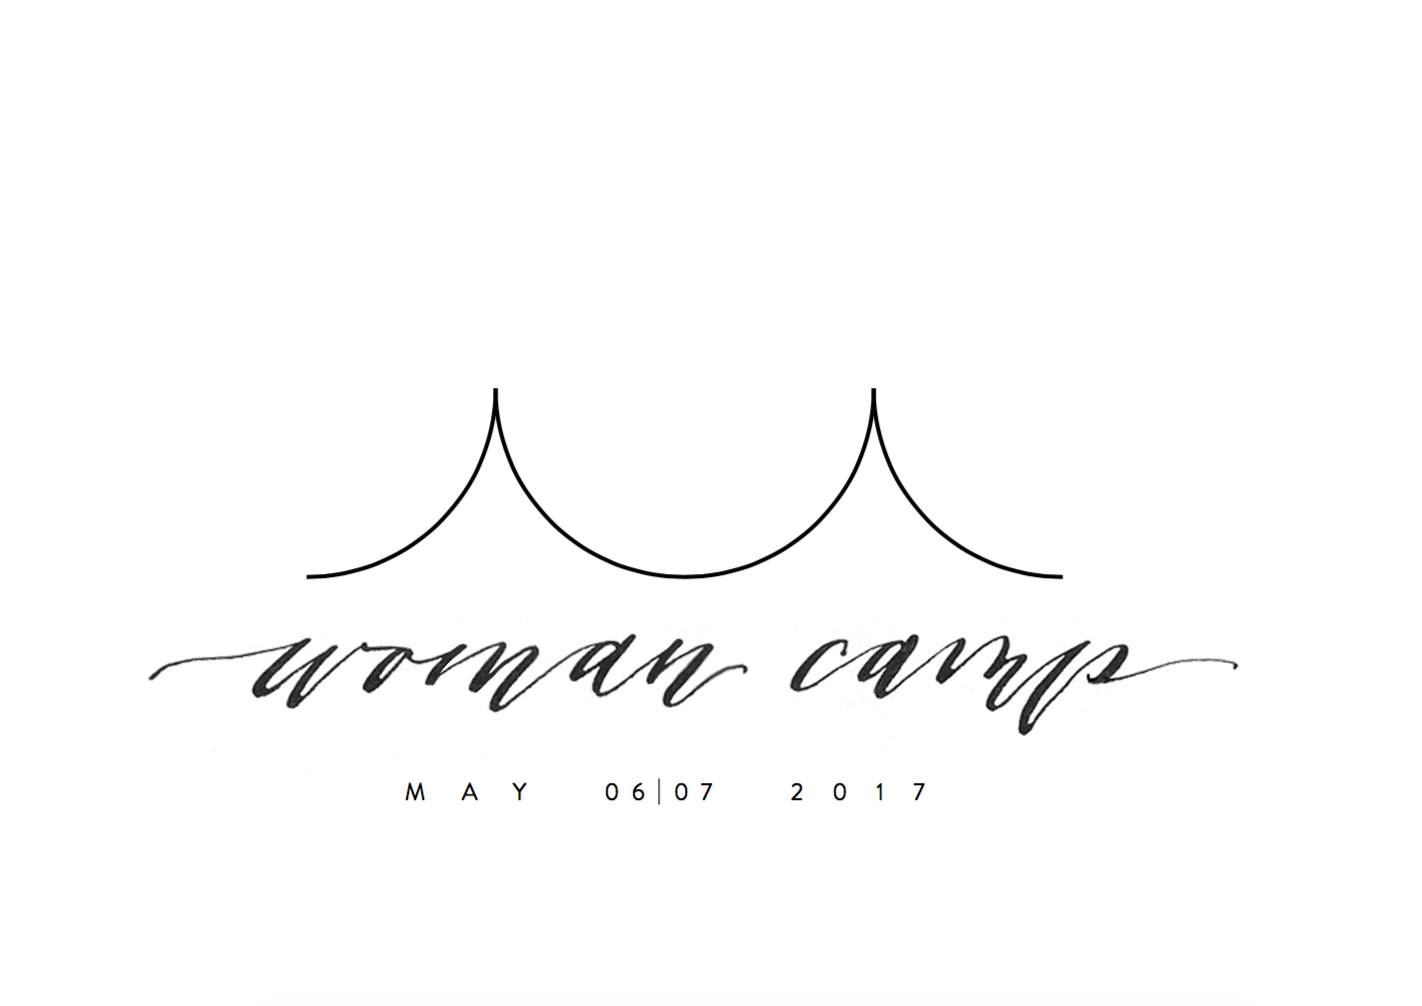 Woman Camp Calligraphy for Identity